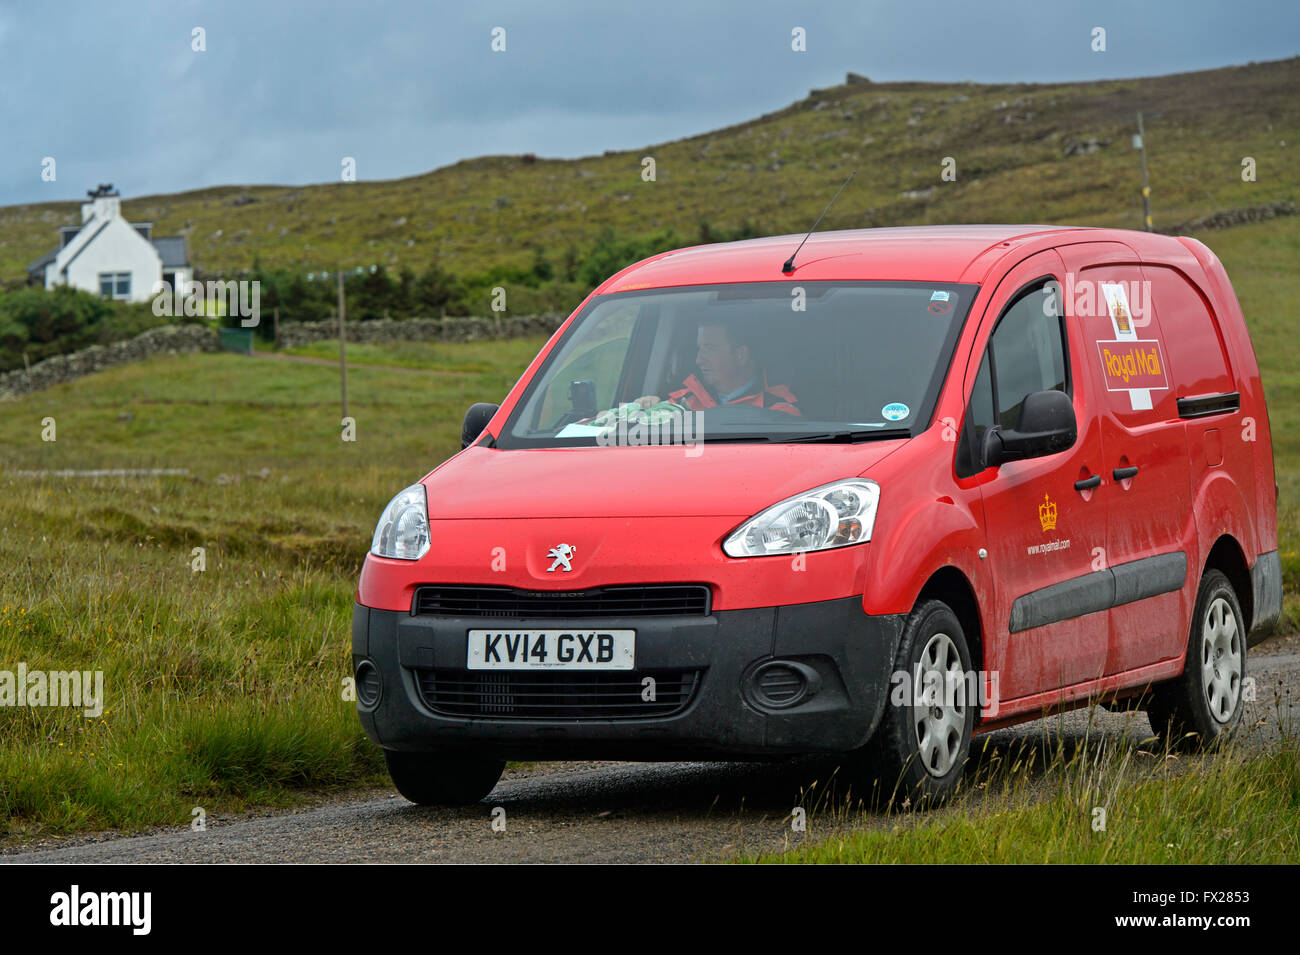 Royal Mail service car on duty in the Scottish Highlands, Sutherland, Scotland, Great Britain - Stock Image